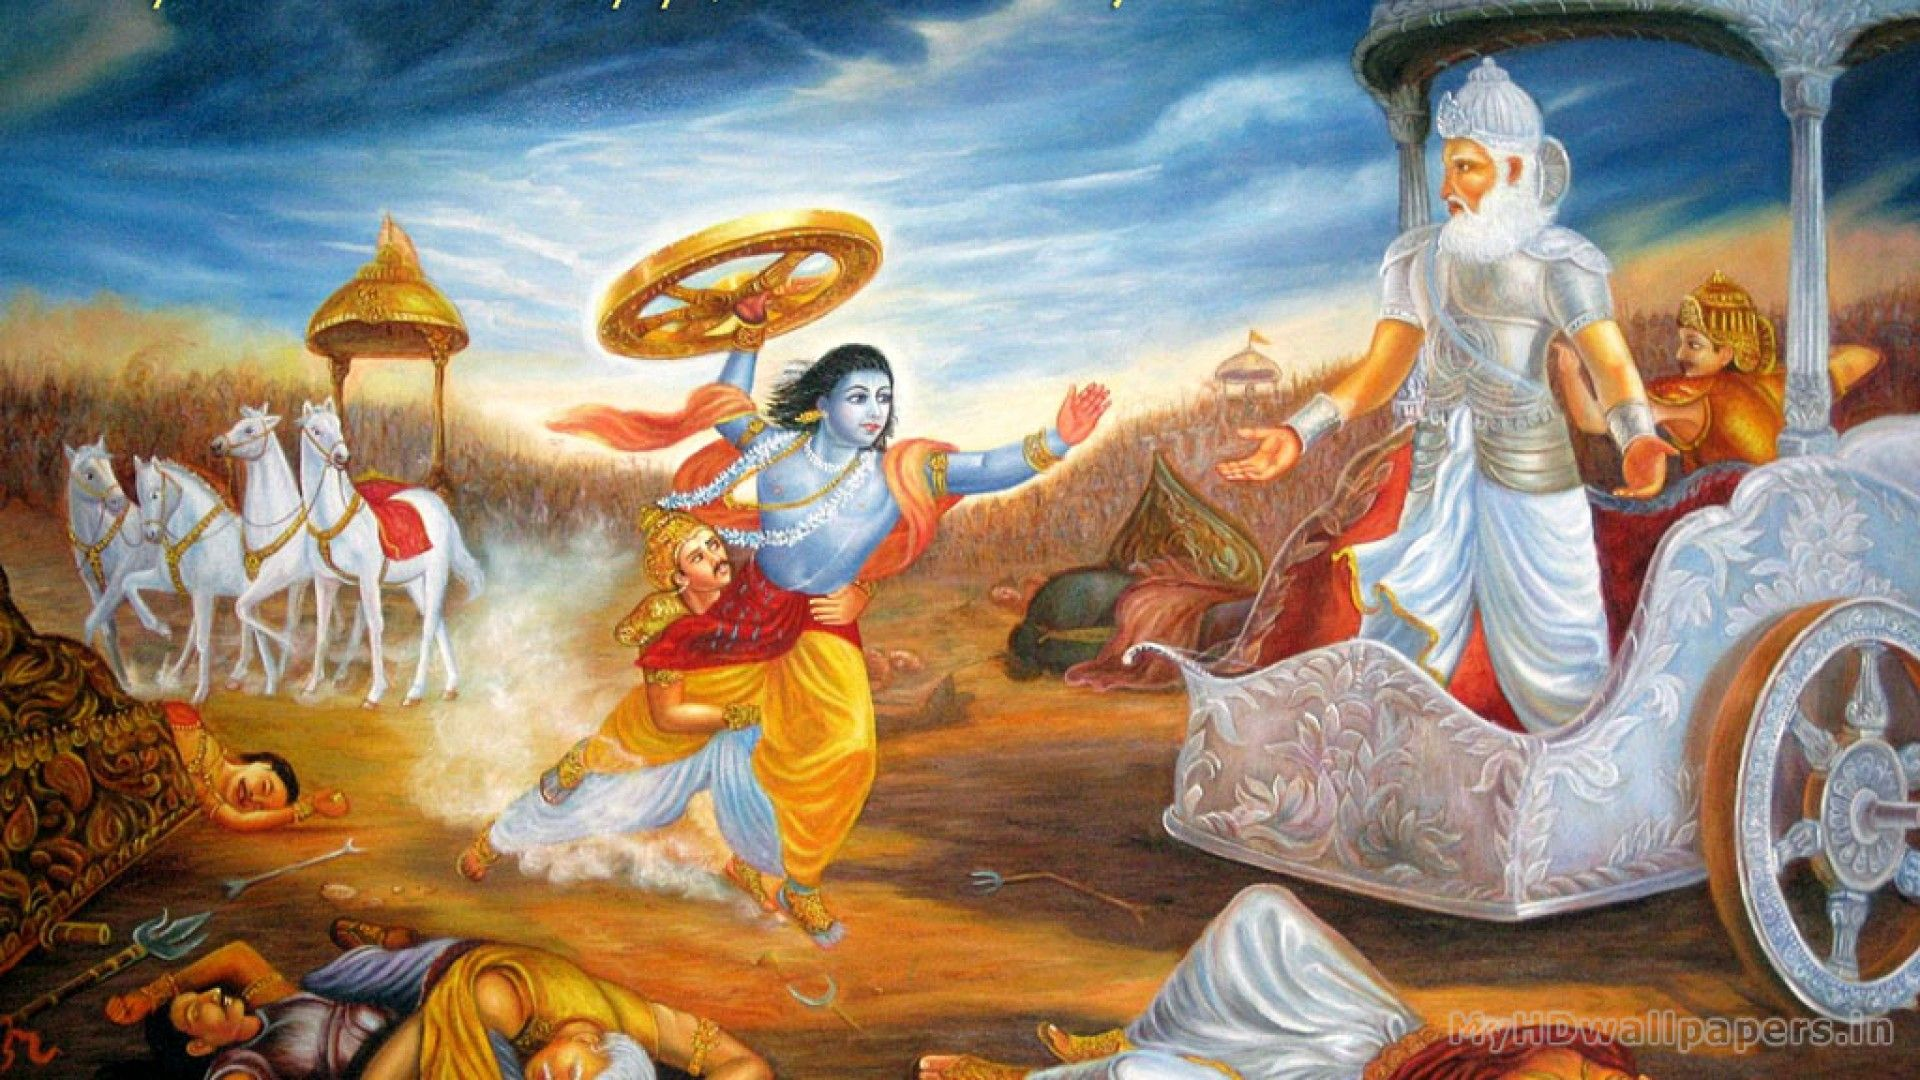 connection between dharma and destiny mahabharata essay The mahabharata claims to be  by a more rounded view of hinduism and the relation between the  as hindu dharma, basically stating that hinduism is a way.